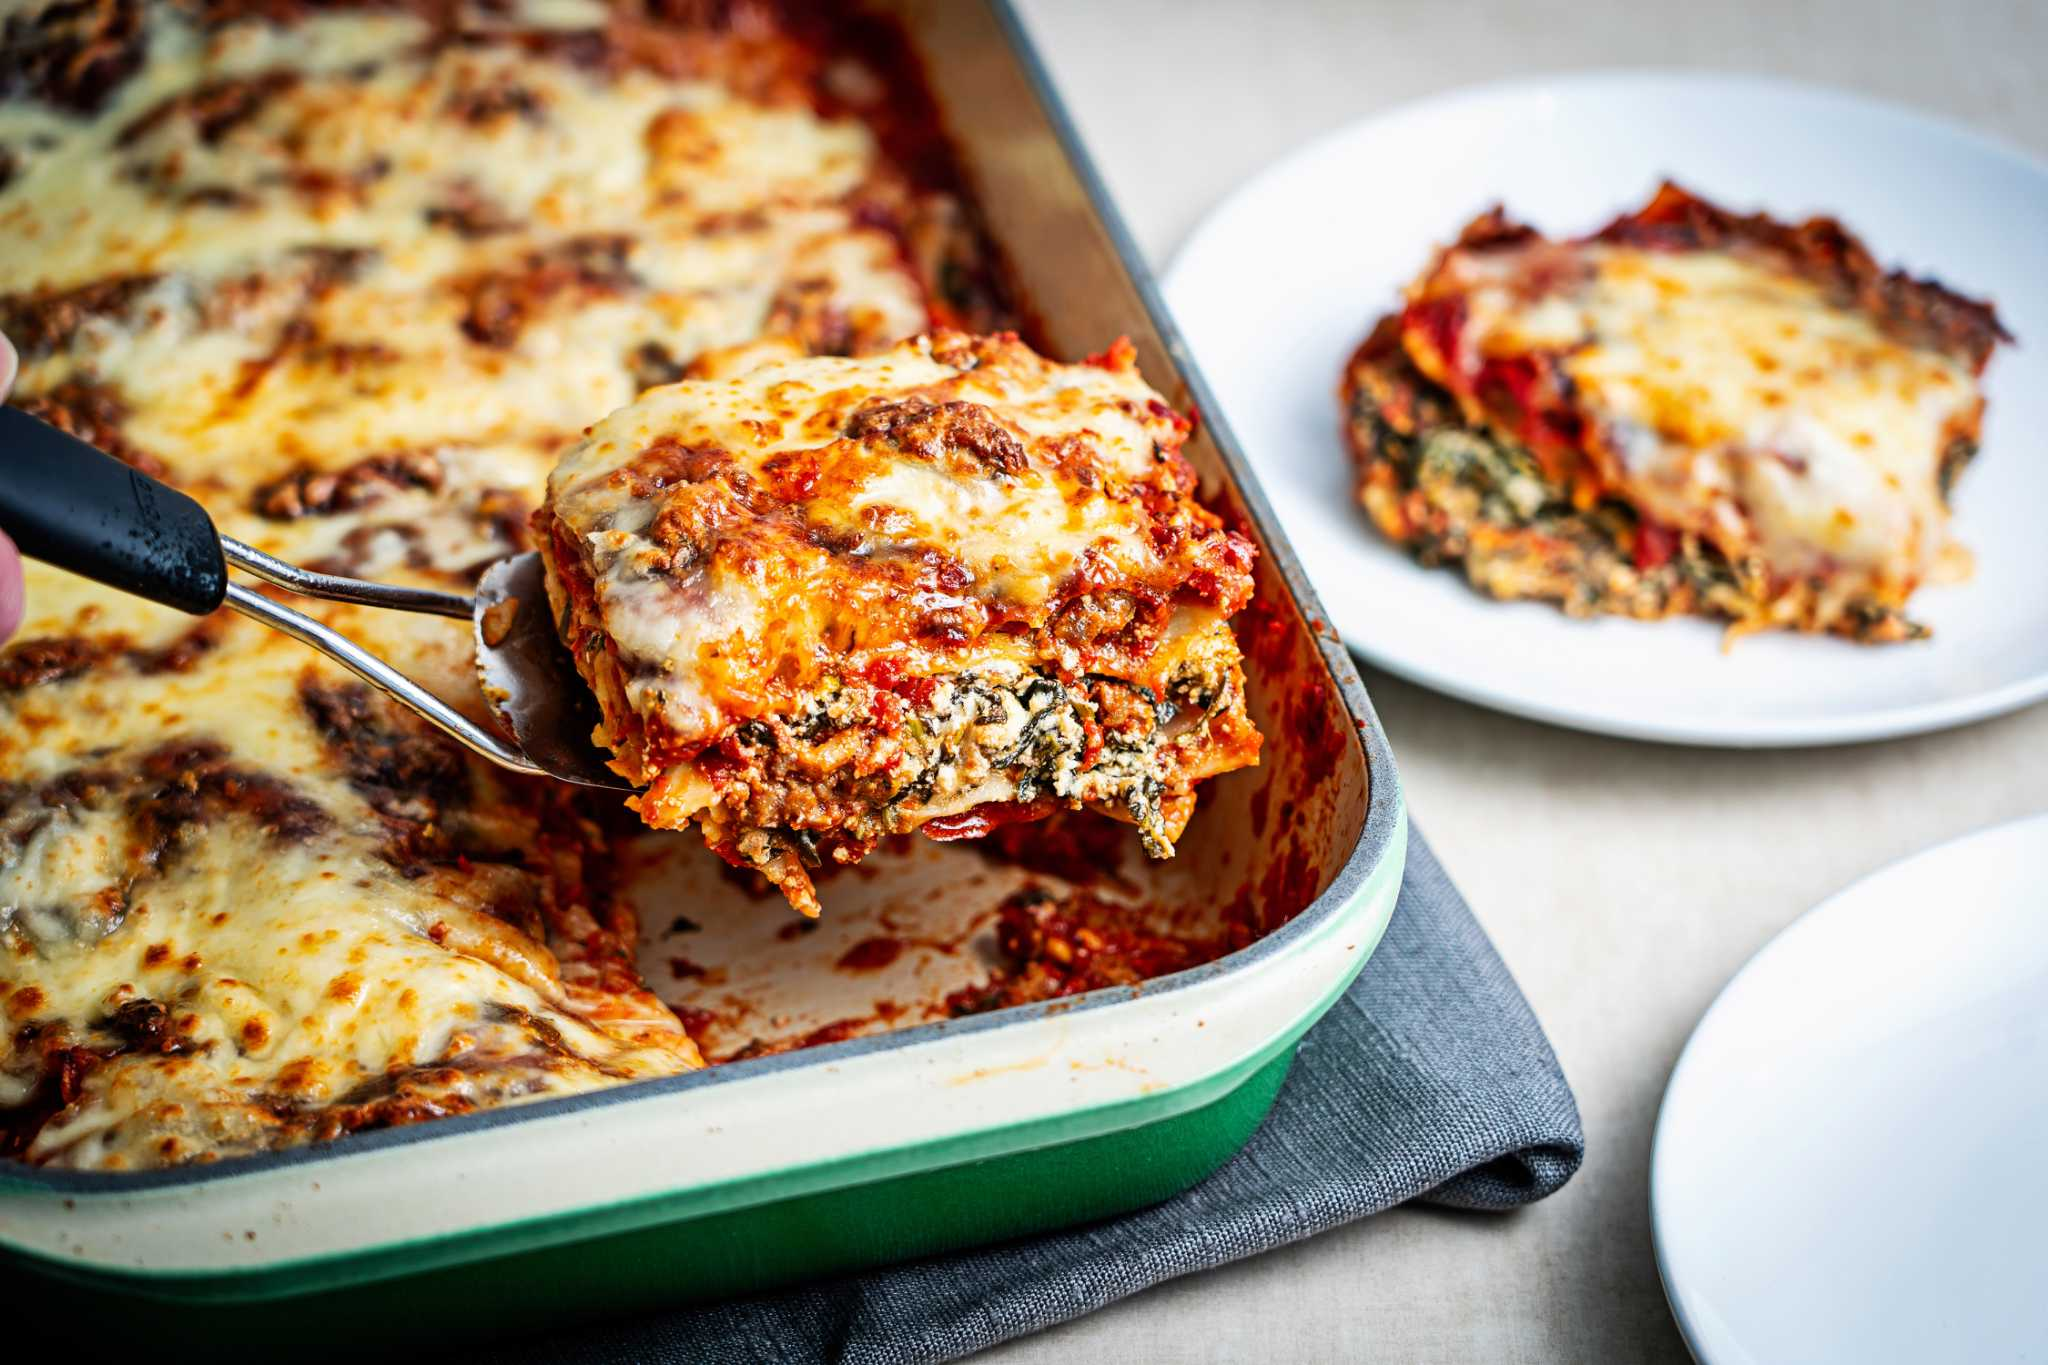 Give lasagna a boost of bold flavors with hot Italian sausage and tangy goat cheese